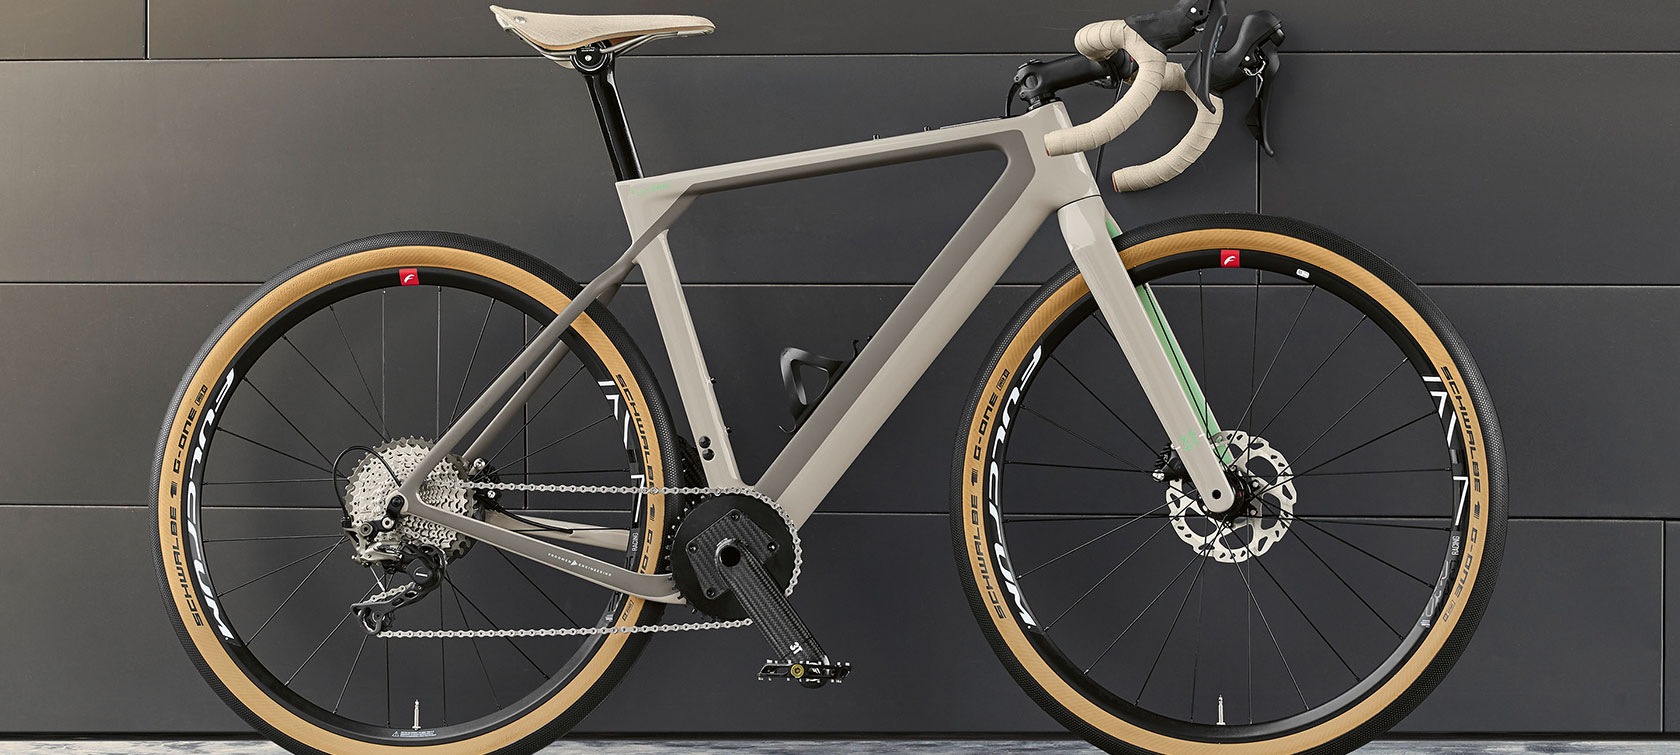 The picture shows the 3T for BMW Gravelbike.